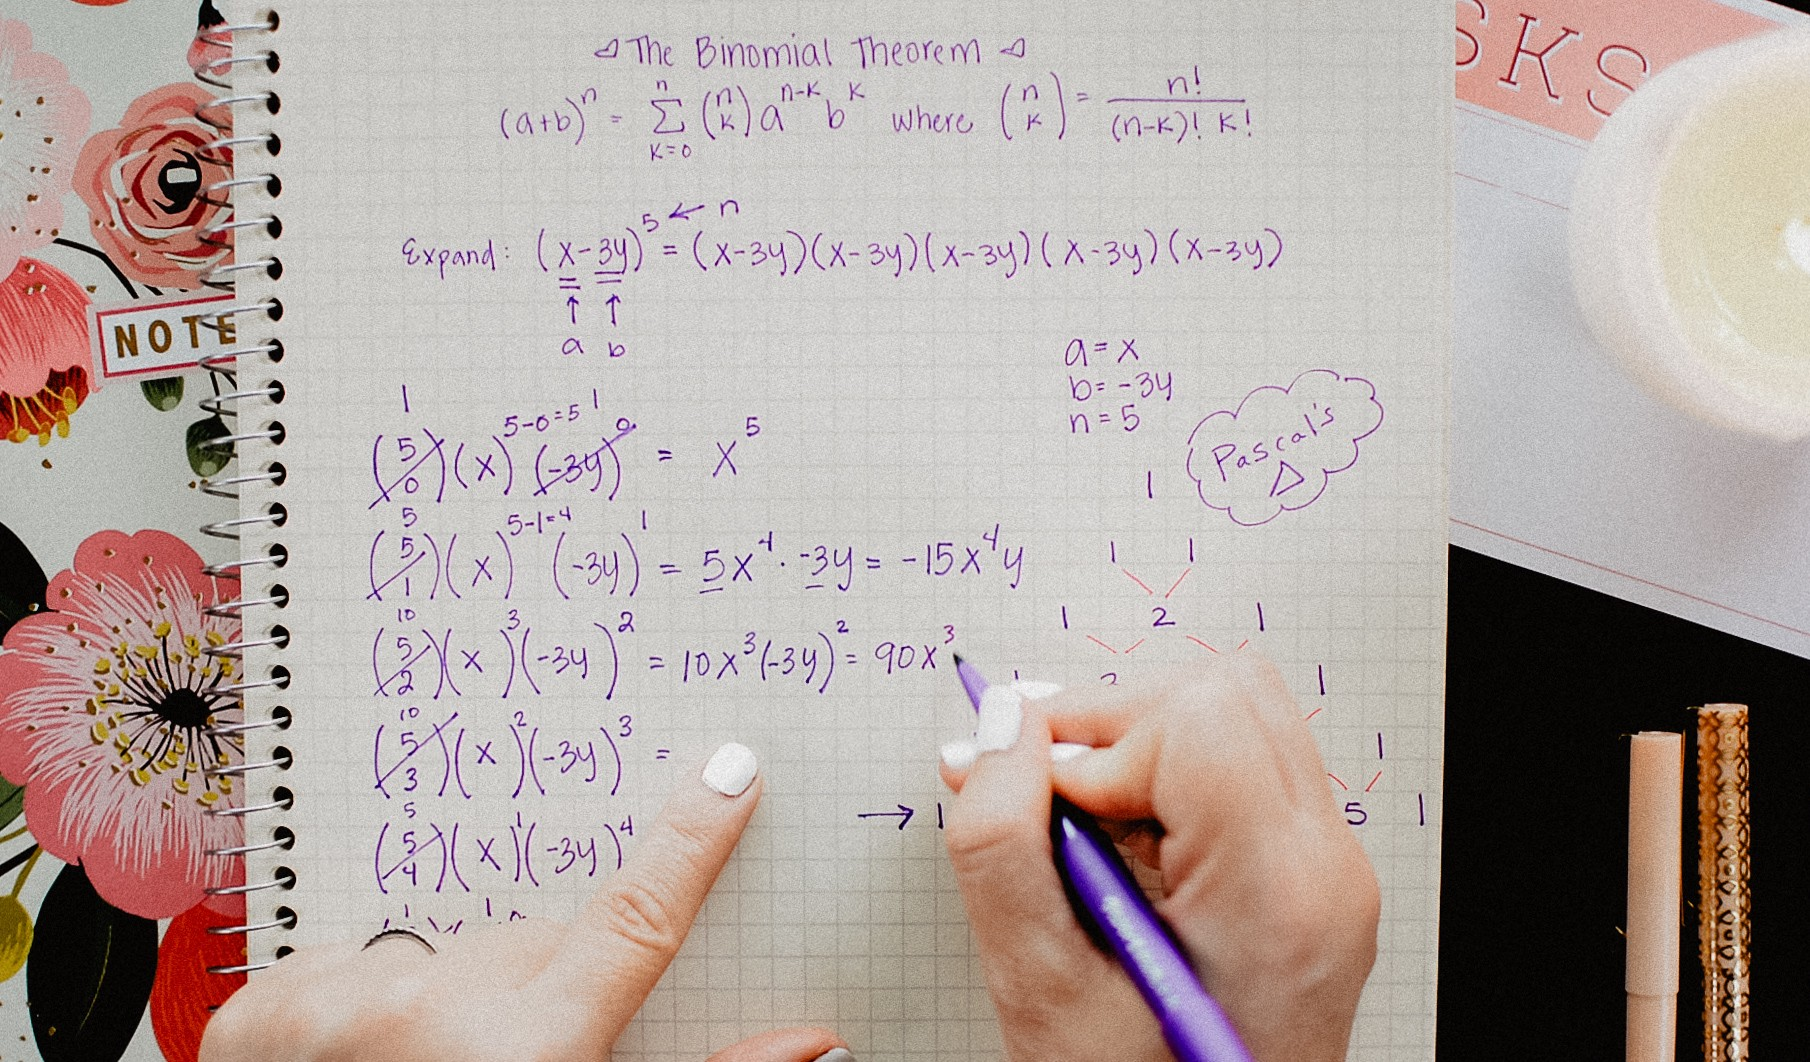 2 2 equally 5 math problems clipart clip royalty free library The Binomial Theorem Explained - Math Hacks - Medium clip royalty free library